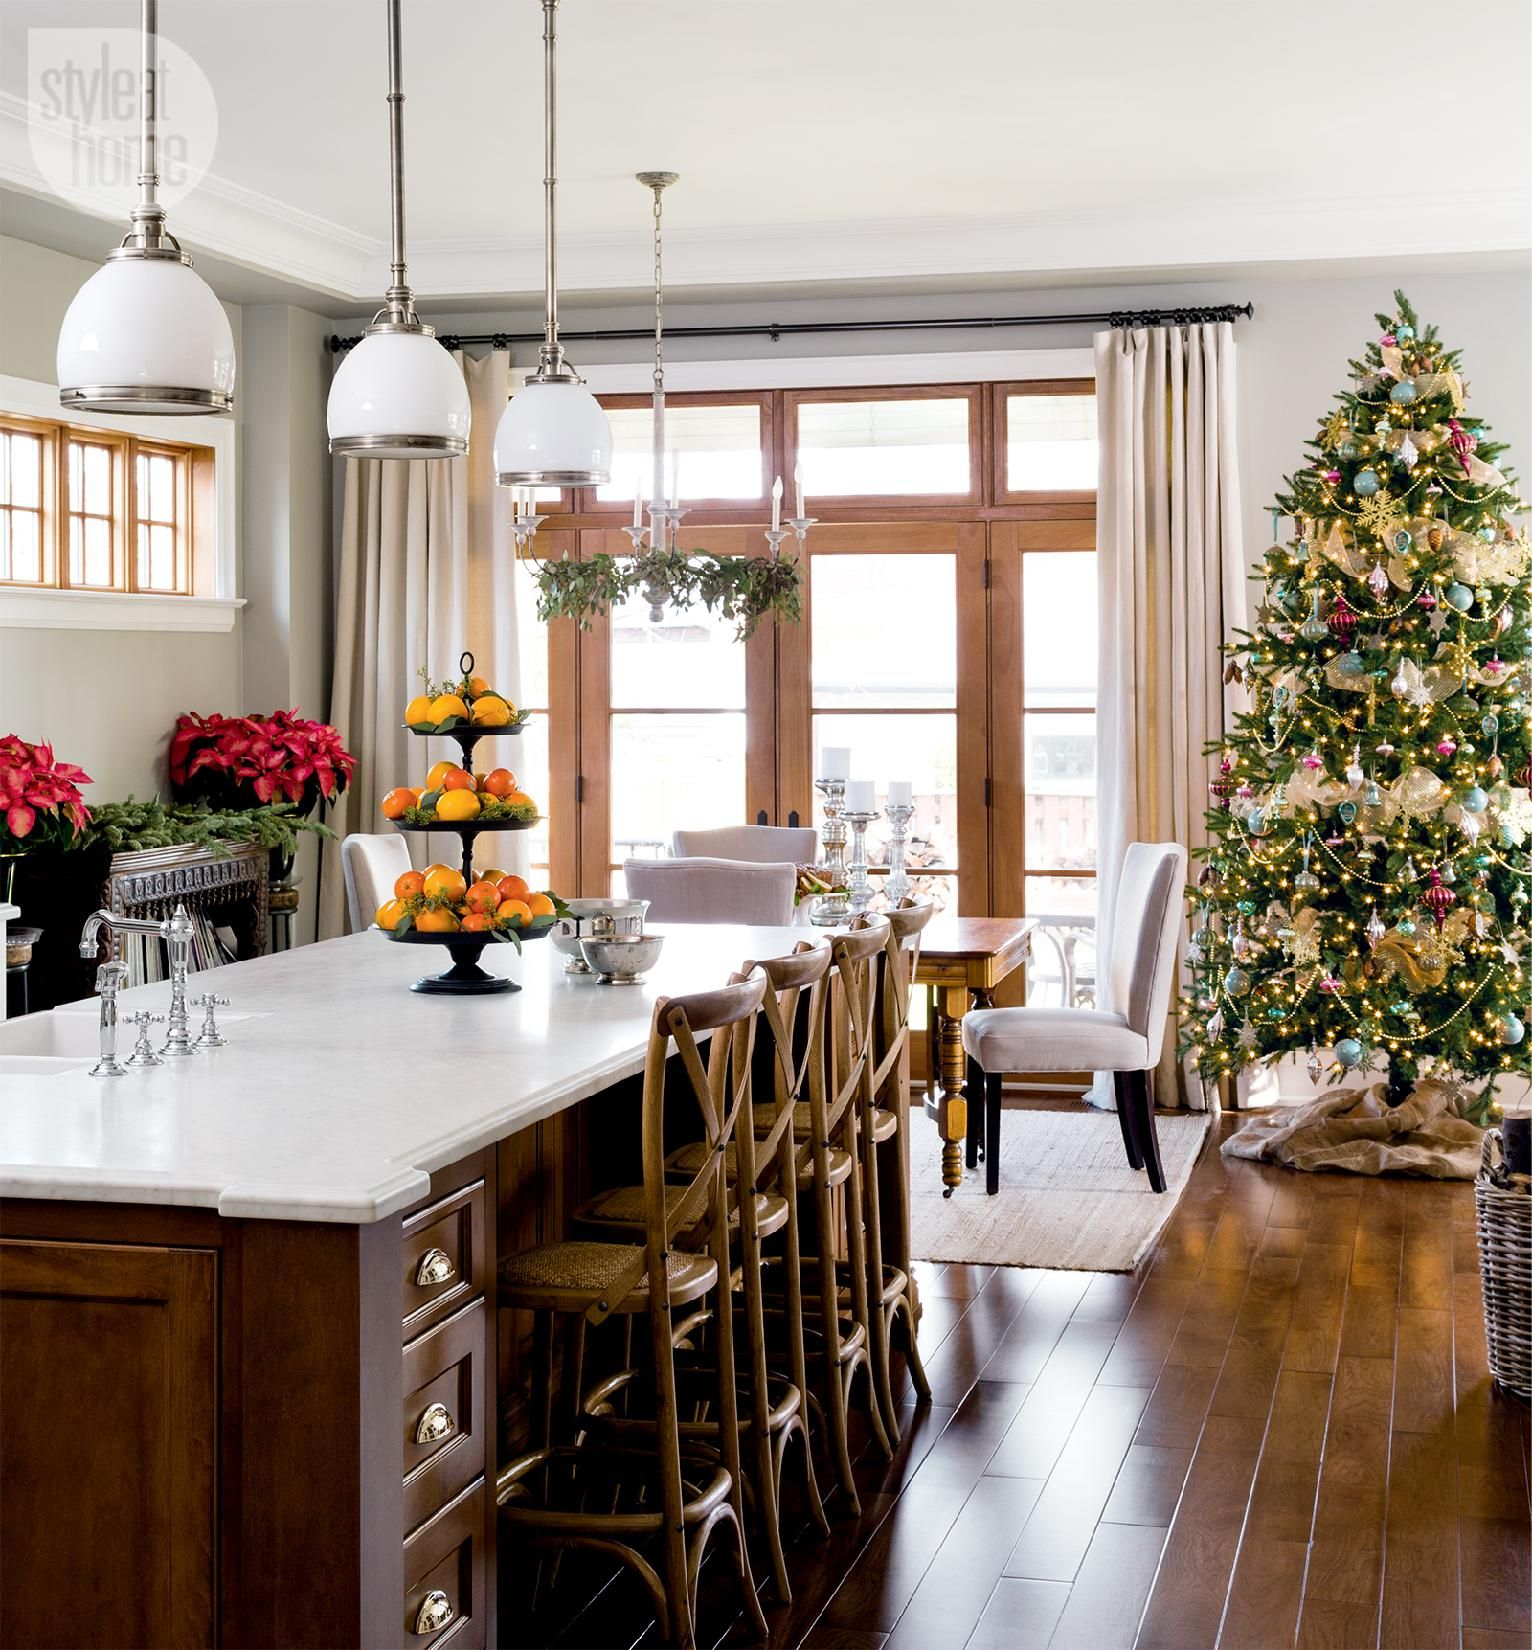 A Canadian Home Styled For Christmas With Natural Elements With